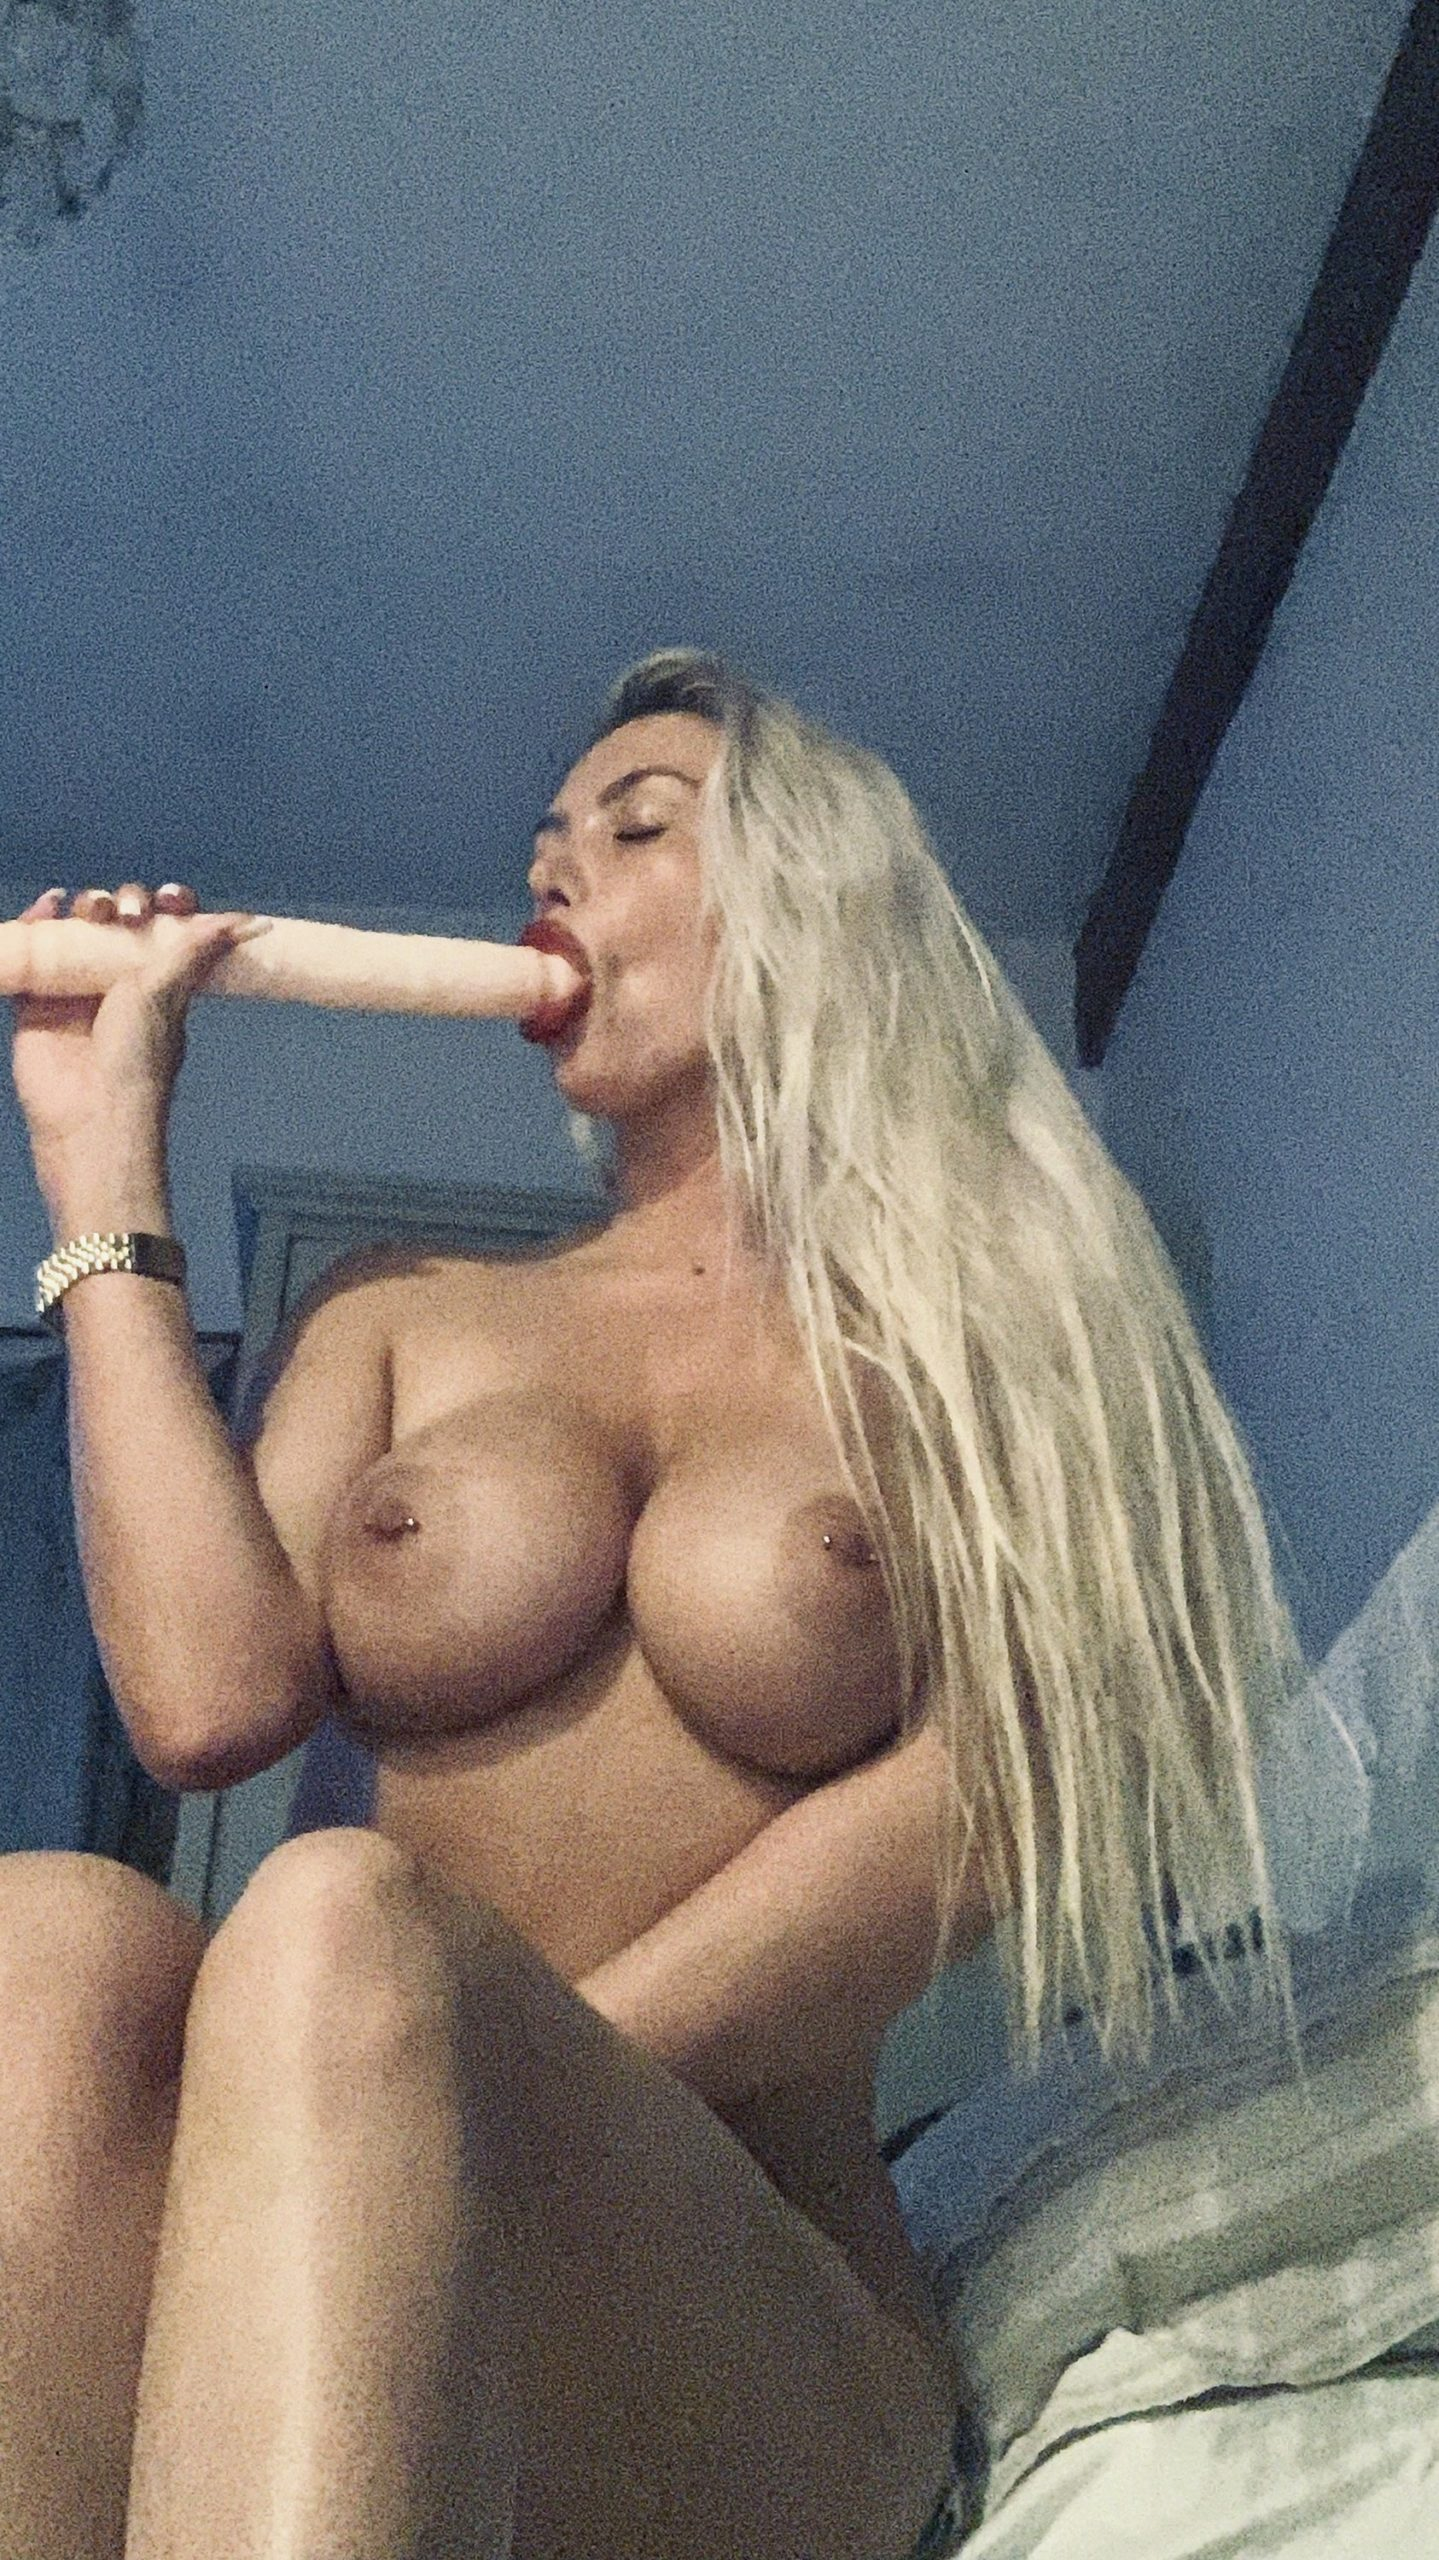 Lucy Nicholson Onlyfans Nudes Leaks 0013